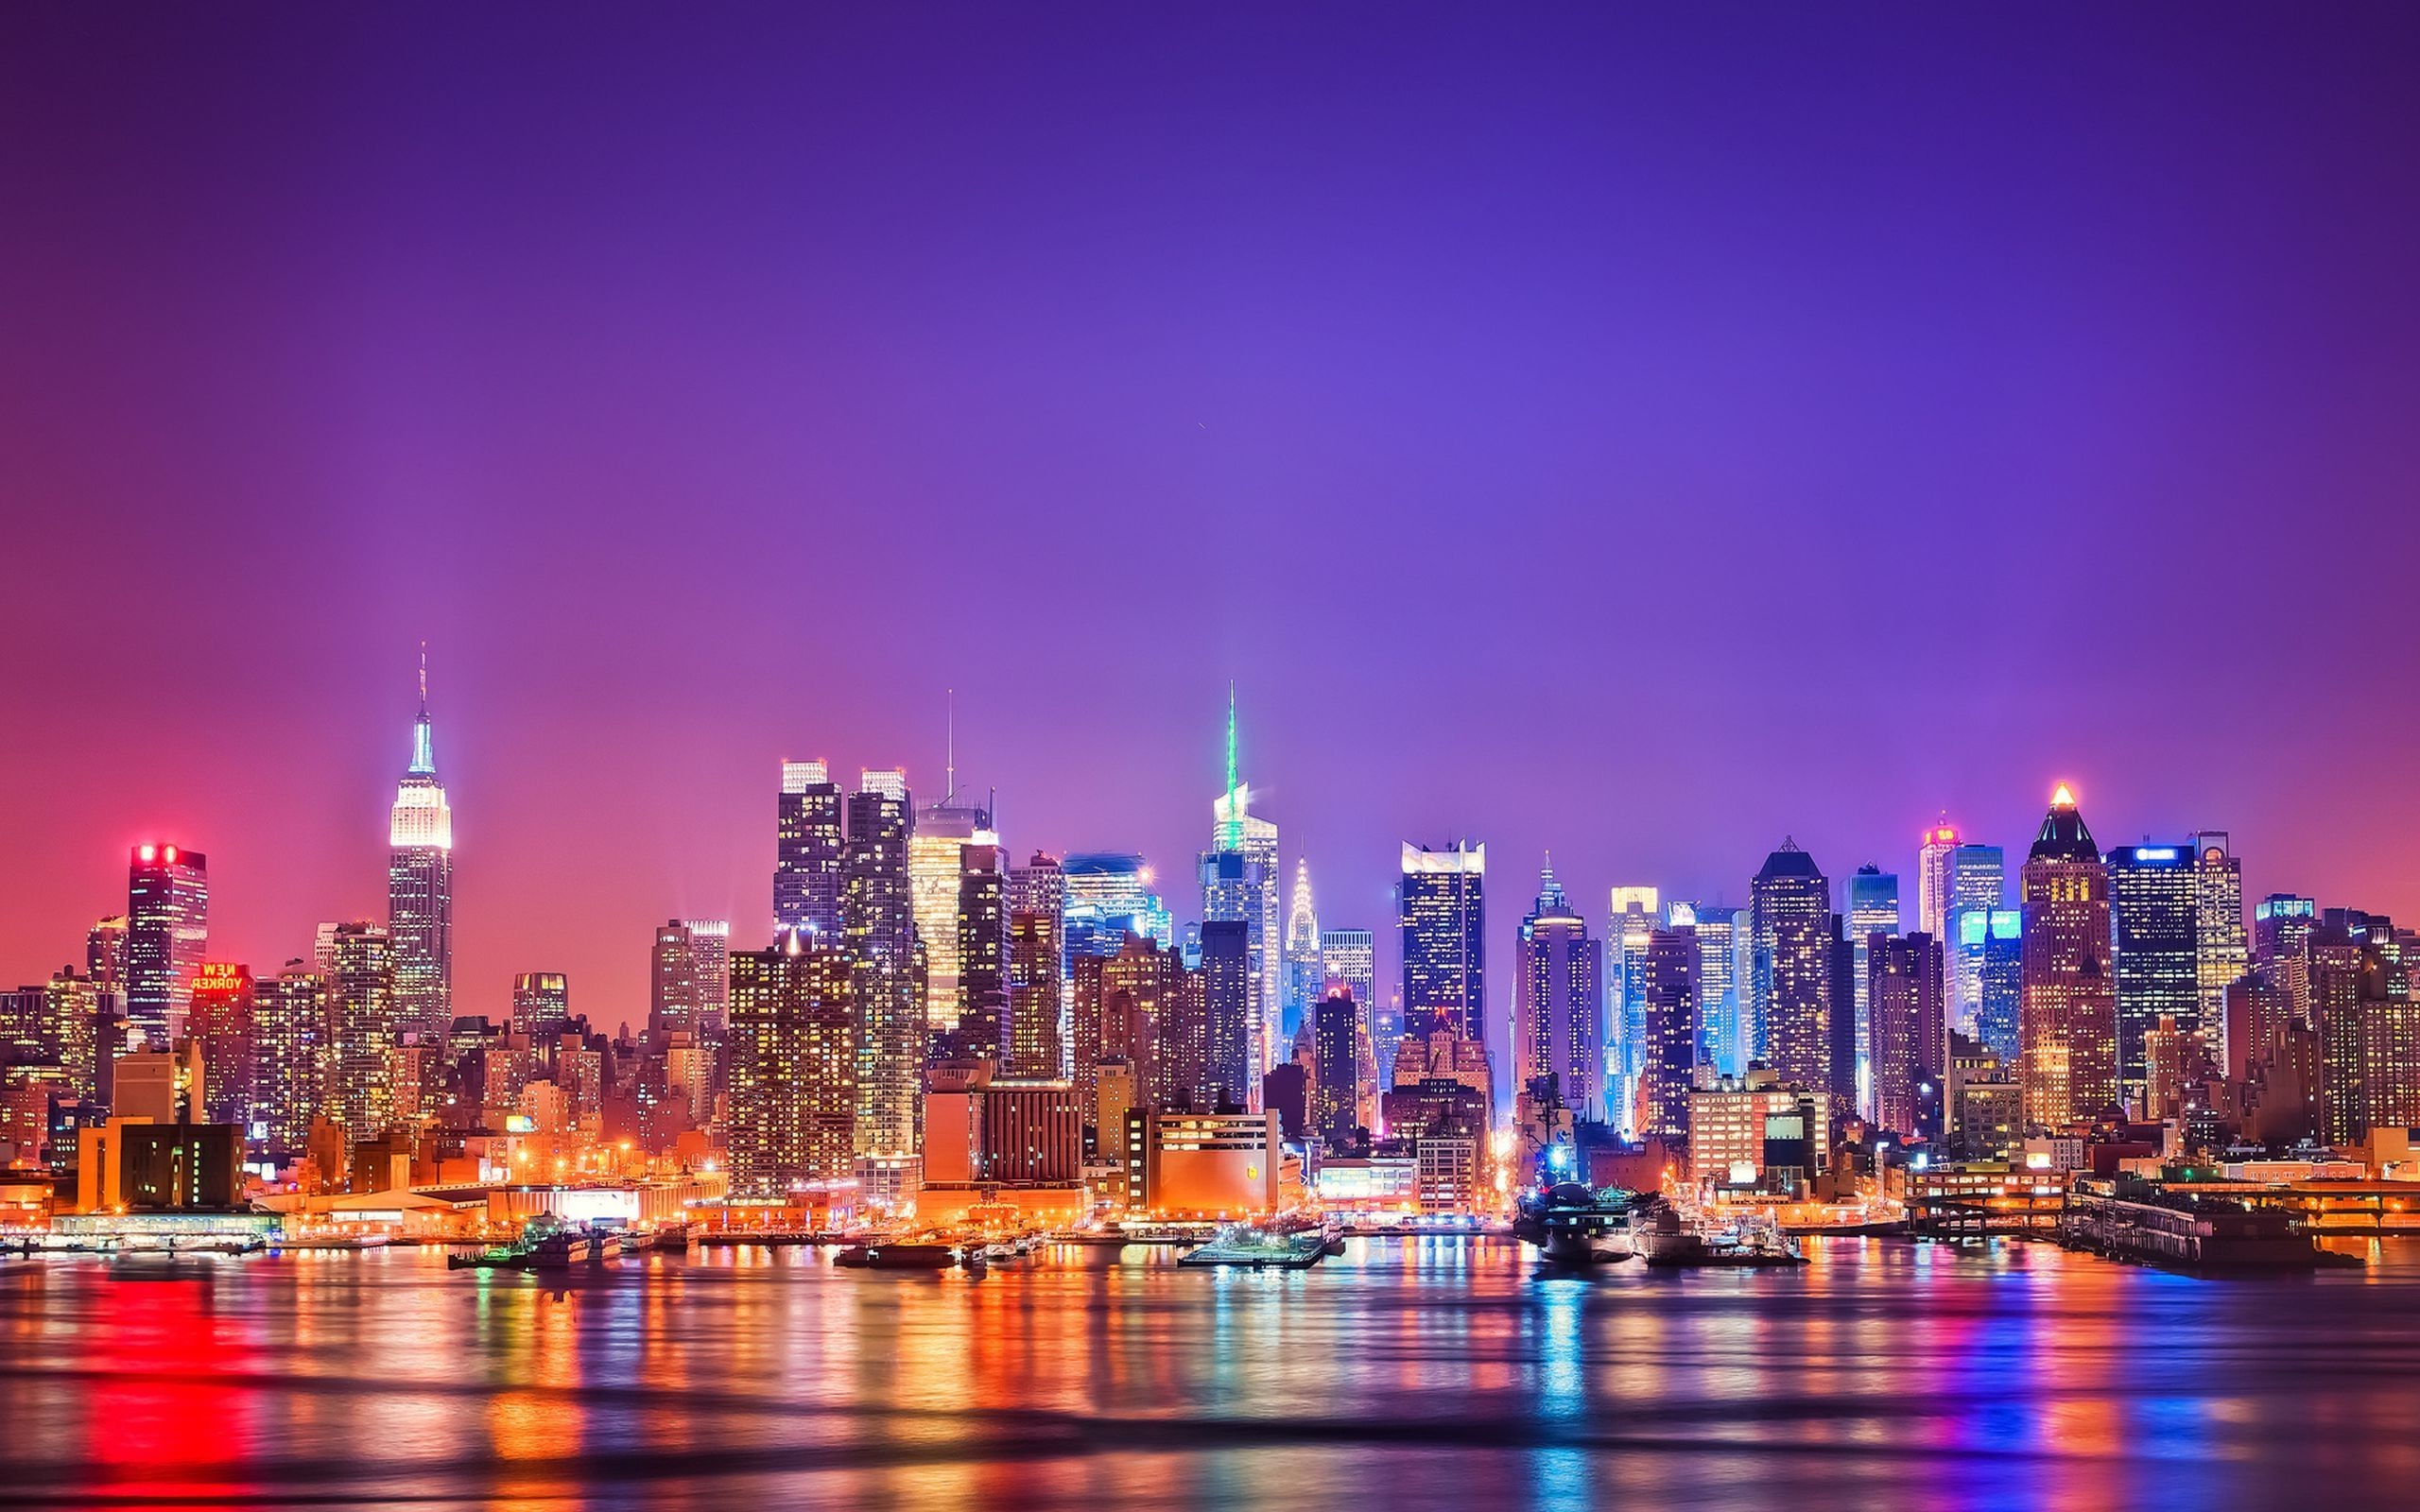 Beautiful New York City Light at Night Wallpaper in High Resolution at 2560x1600